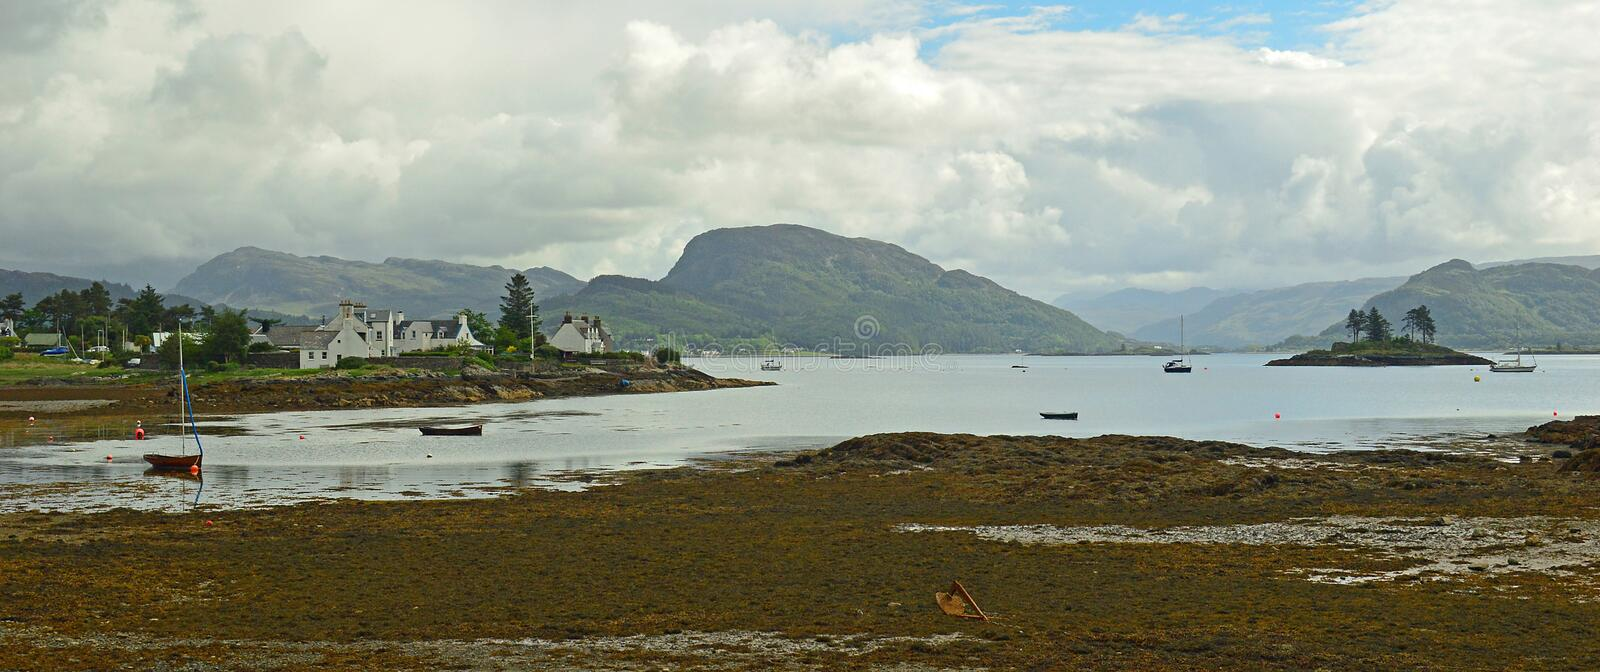 Plockton, Ecosse Royaume-Uni l'Europe photos libres de droits